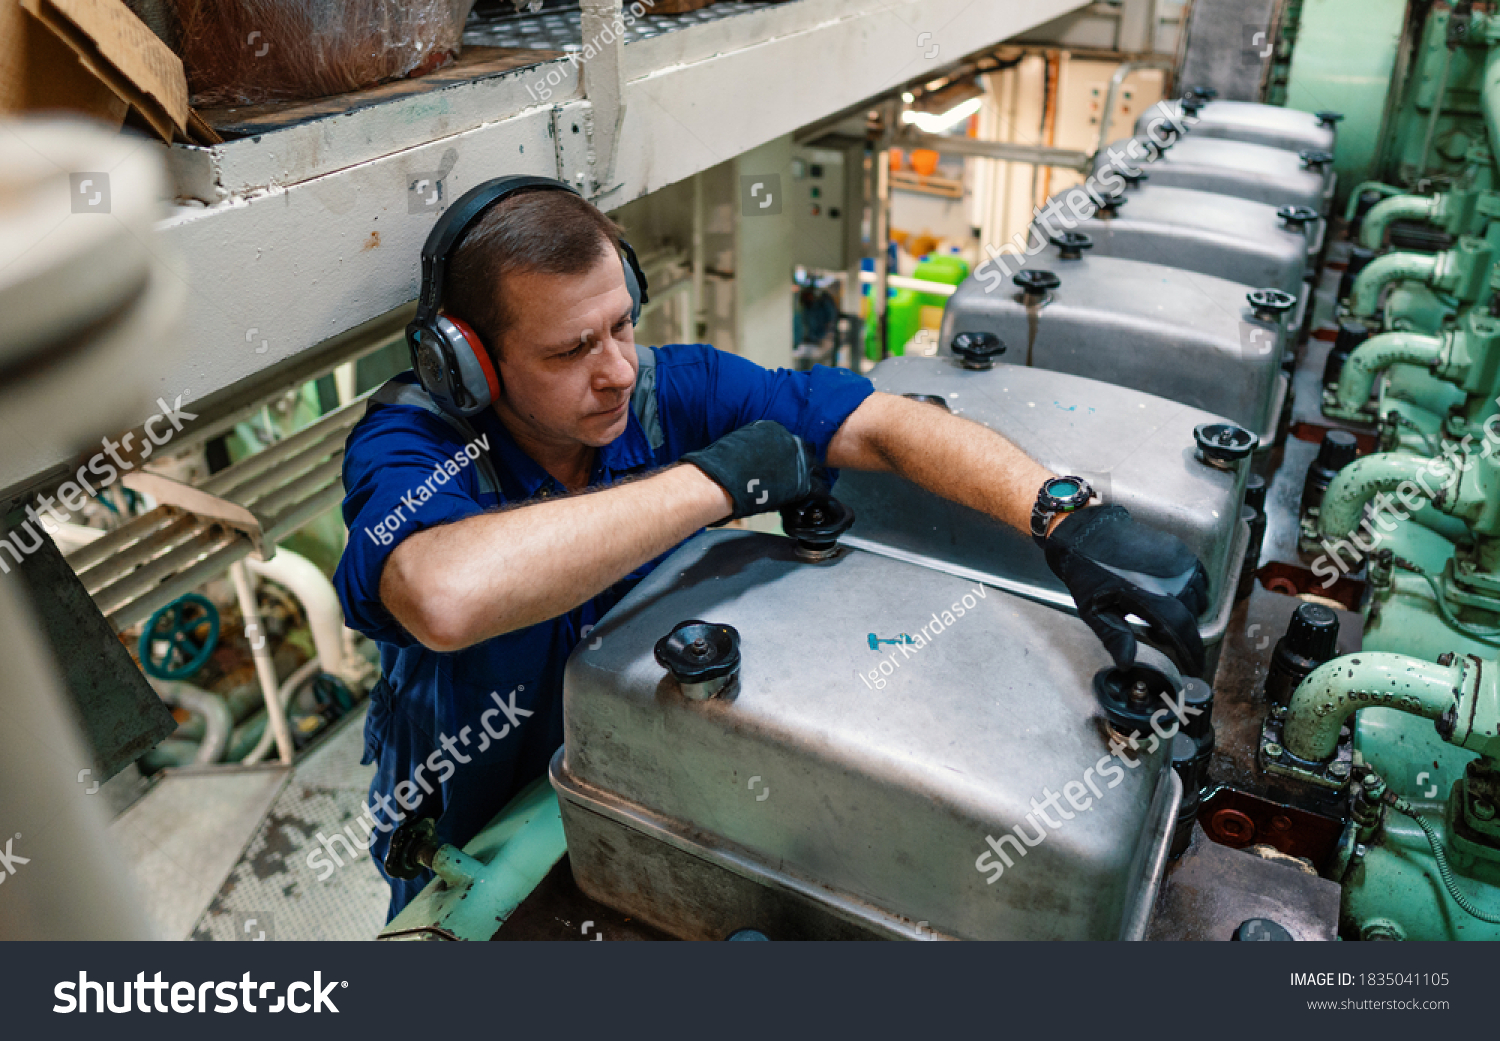 Marine engineer officer reparing vessel engines and propulsion in engine control room ECR. Ship onboard maintenance #1835041105